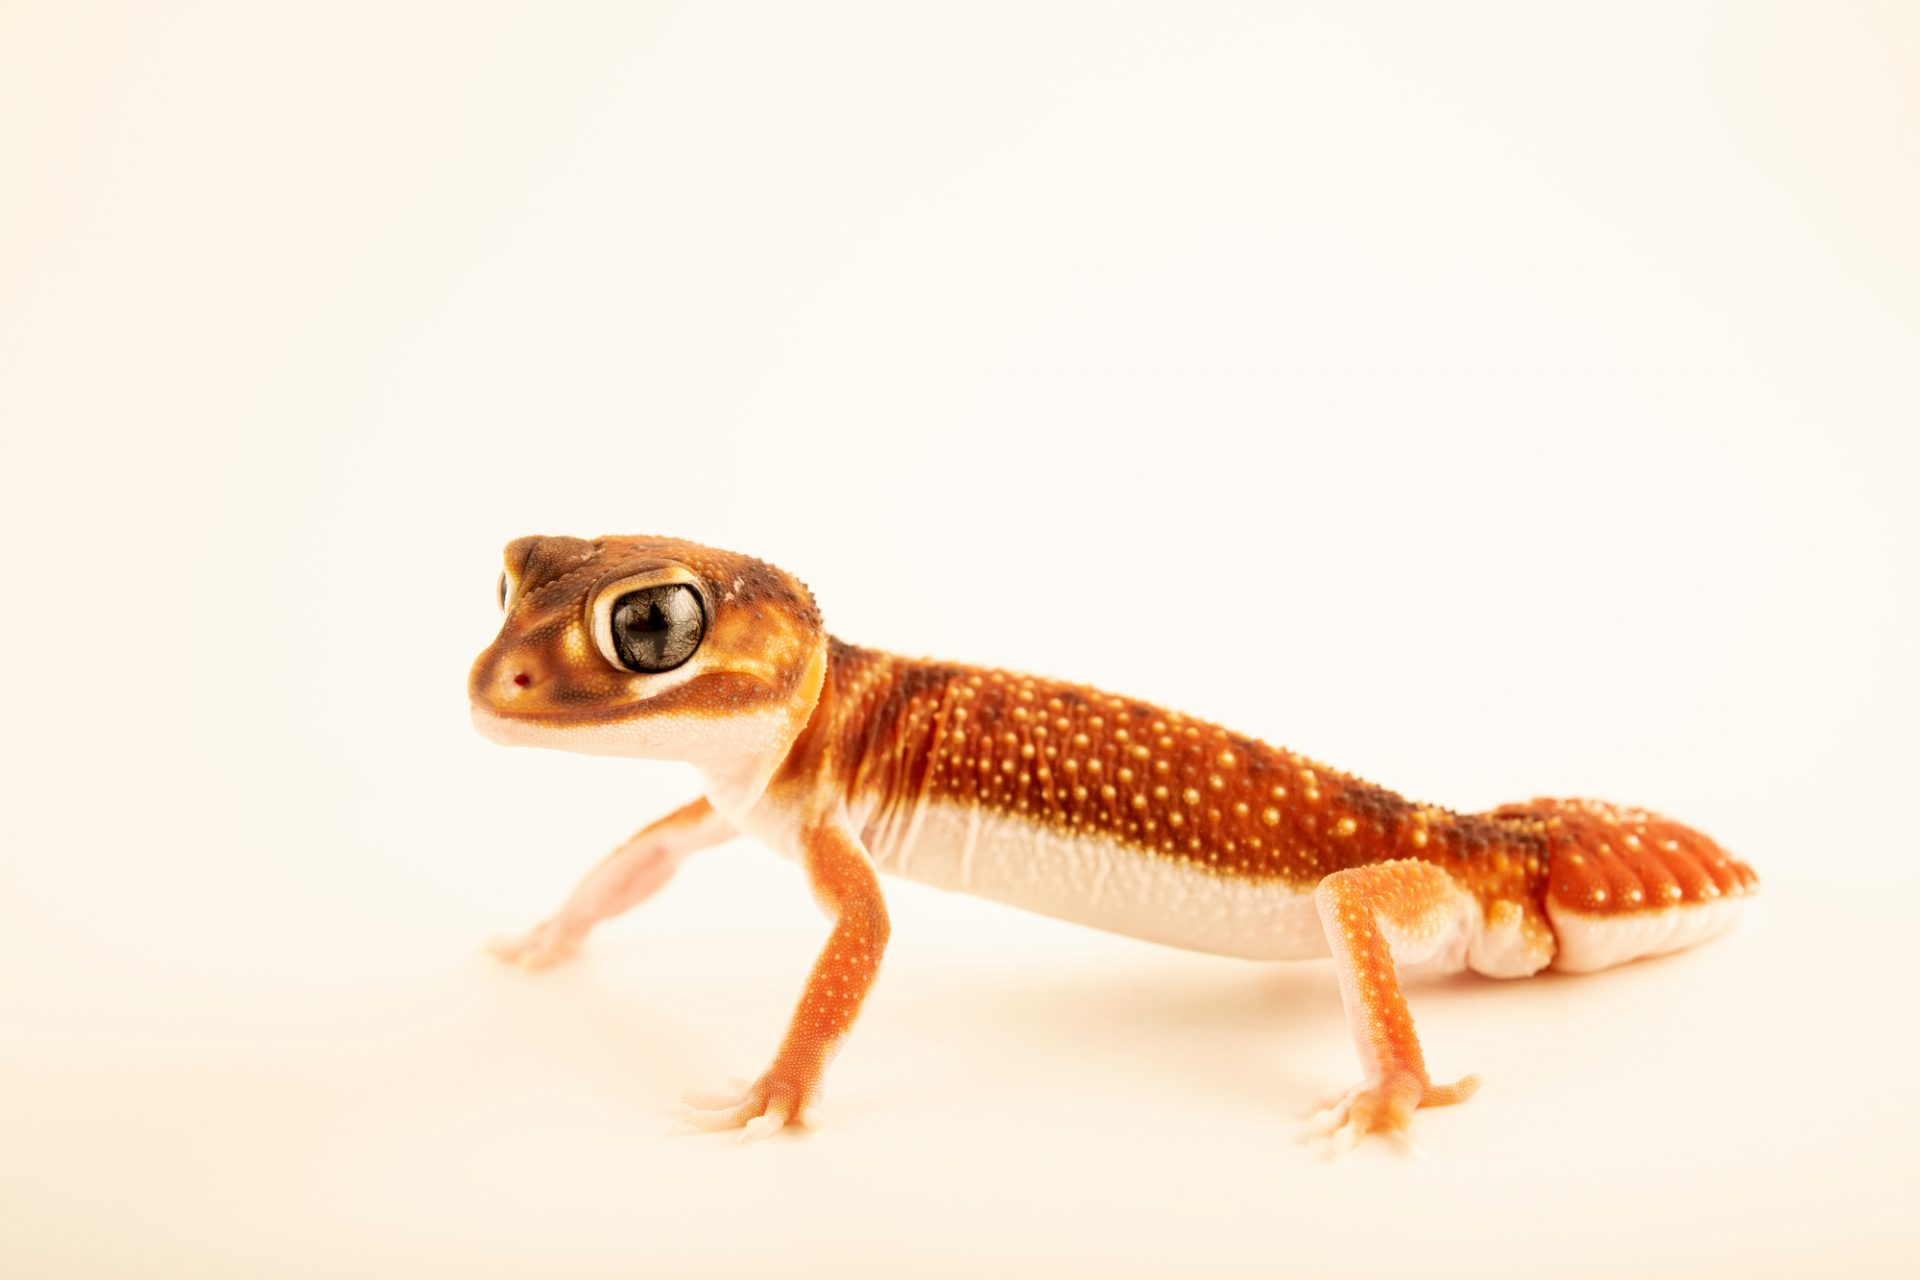 Photo: A Western smooth knob-tailed gecko (Nephrurus levis pilbarensis) from a private collection.